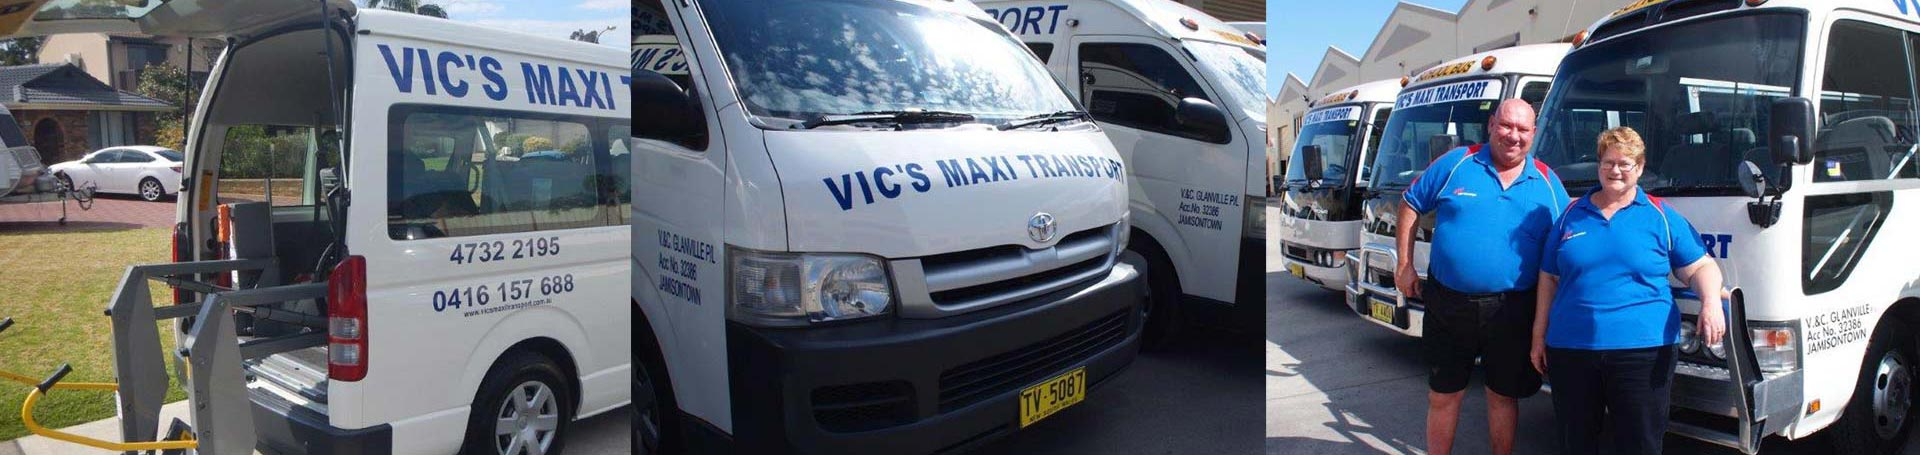 Vics Maxi Transport